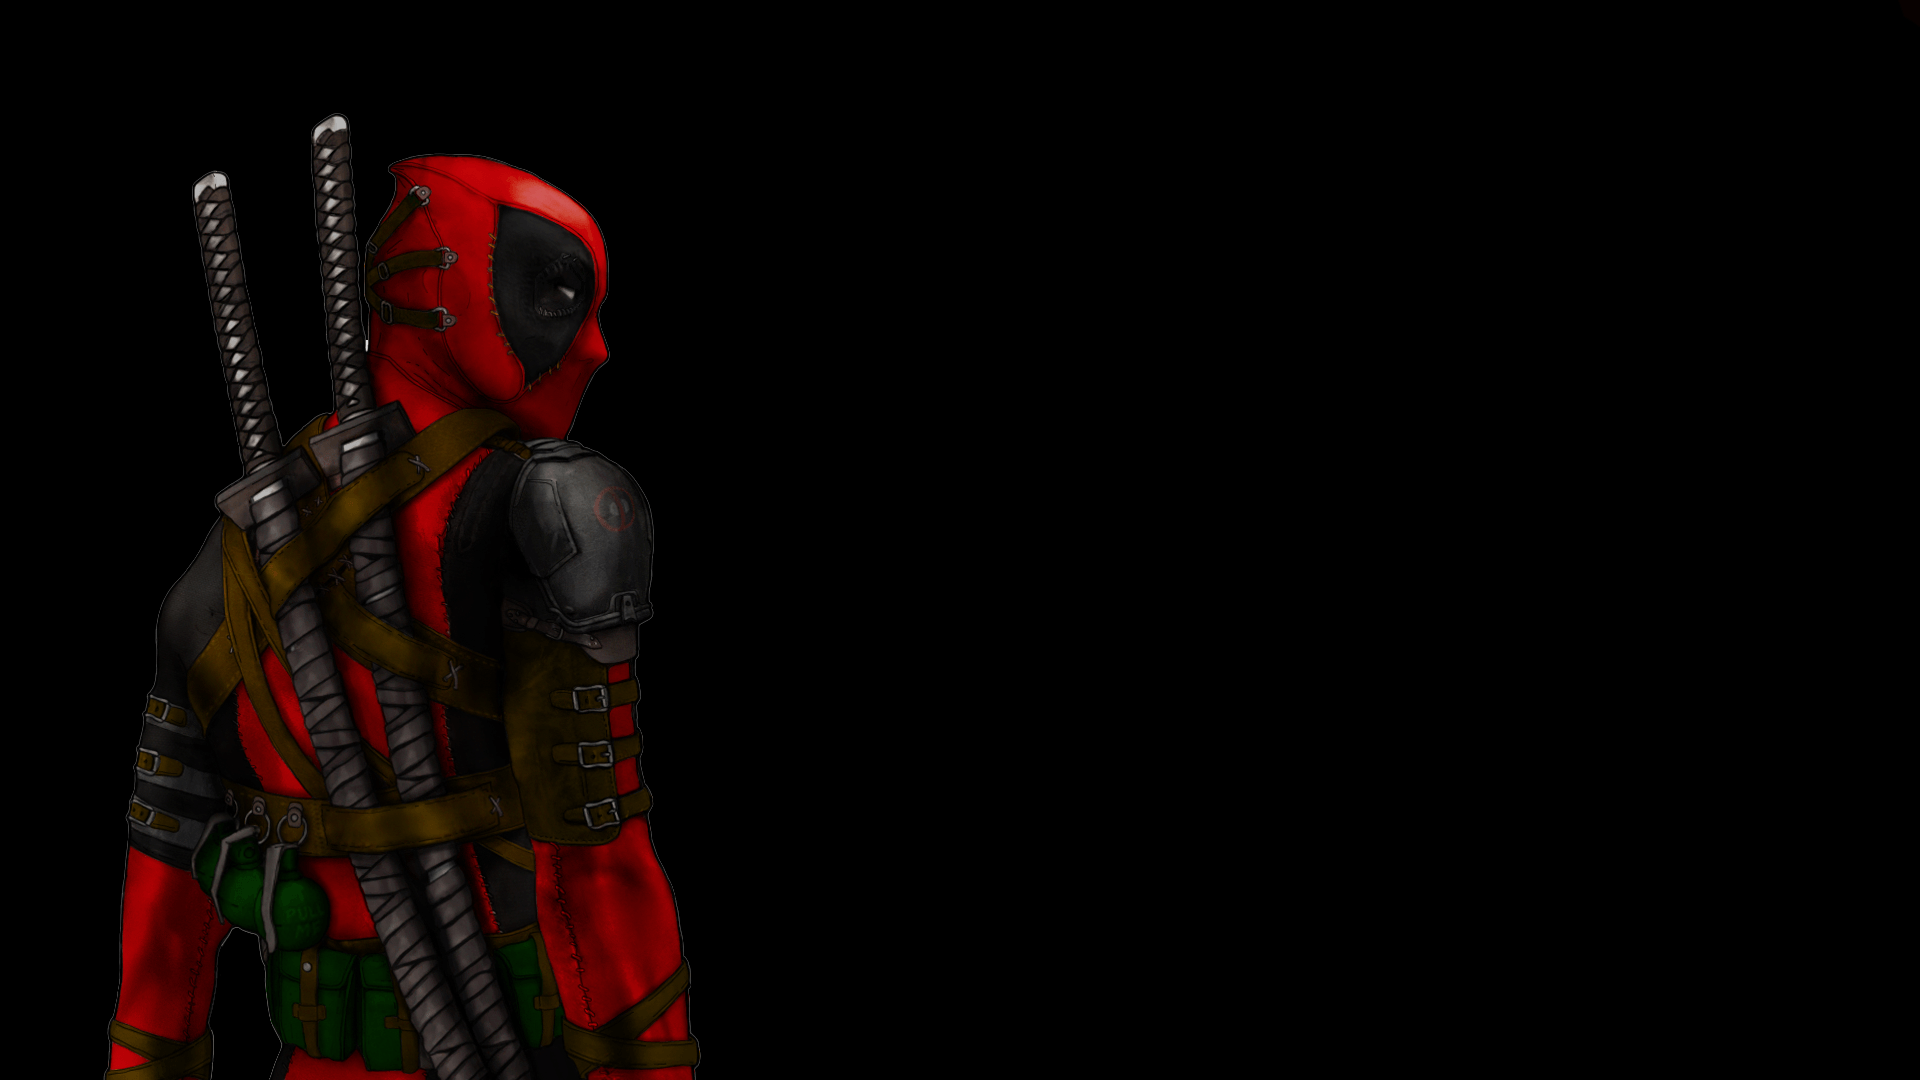 Wallpapers For > Deadpool Movie Wallpaper Hd